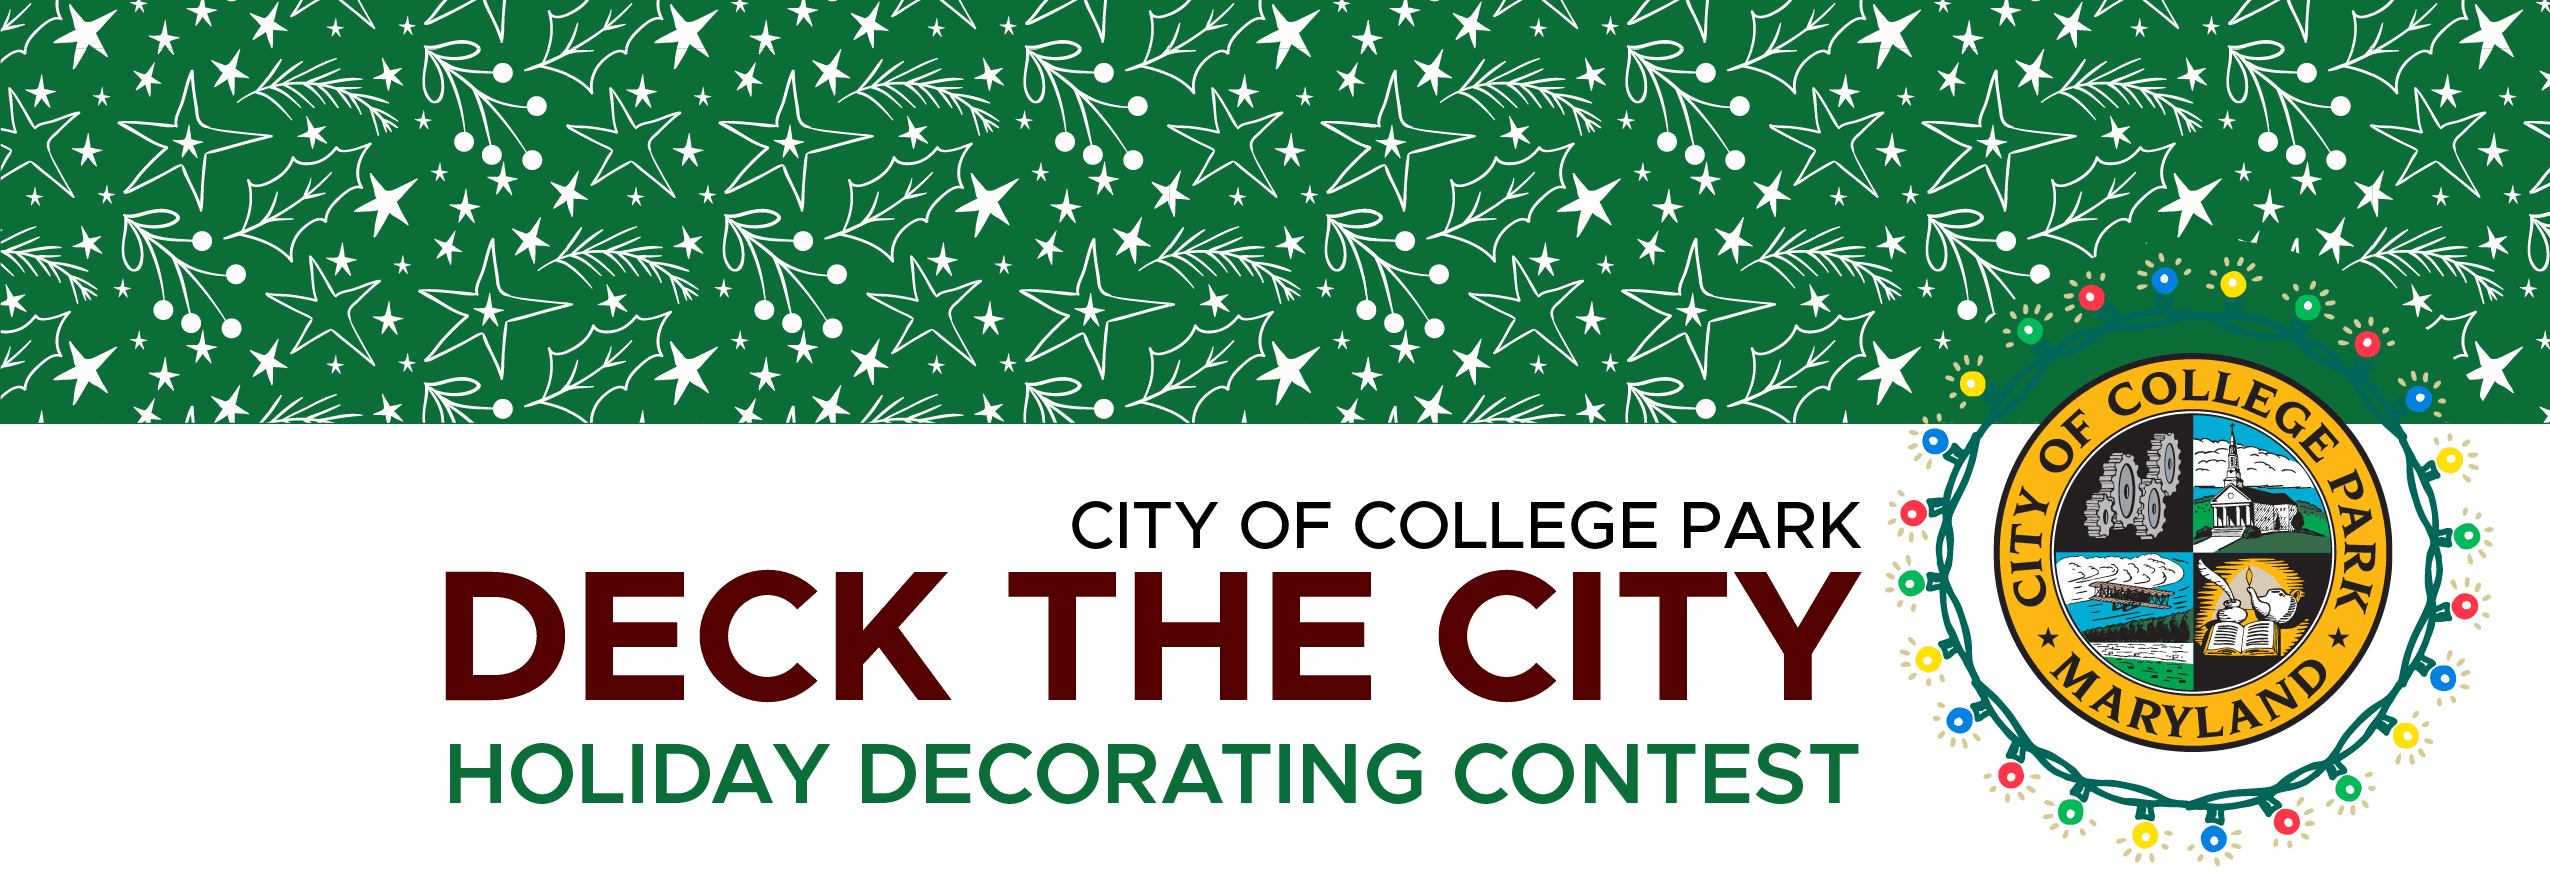 Deck the City Holiday Decorating Contest